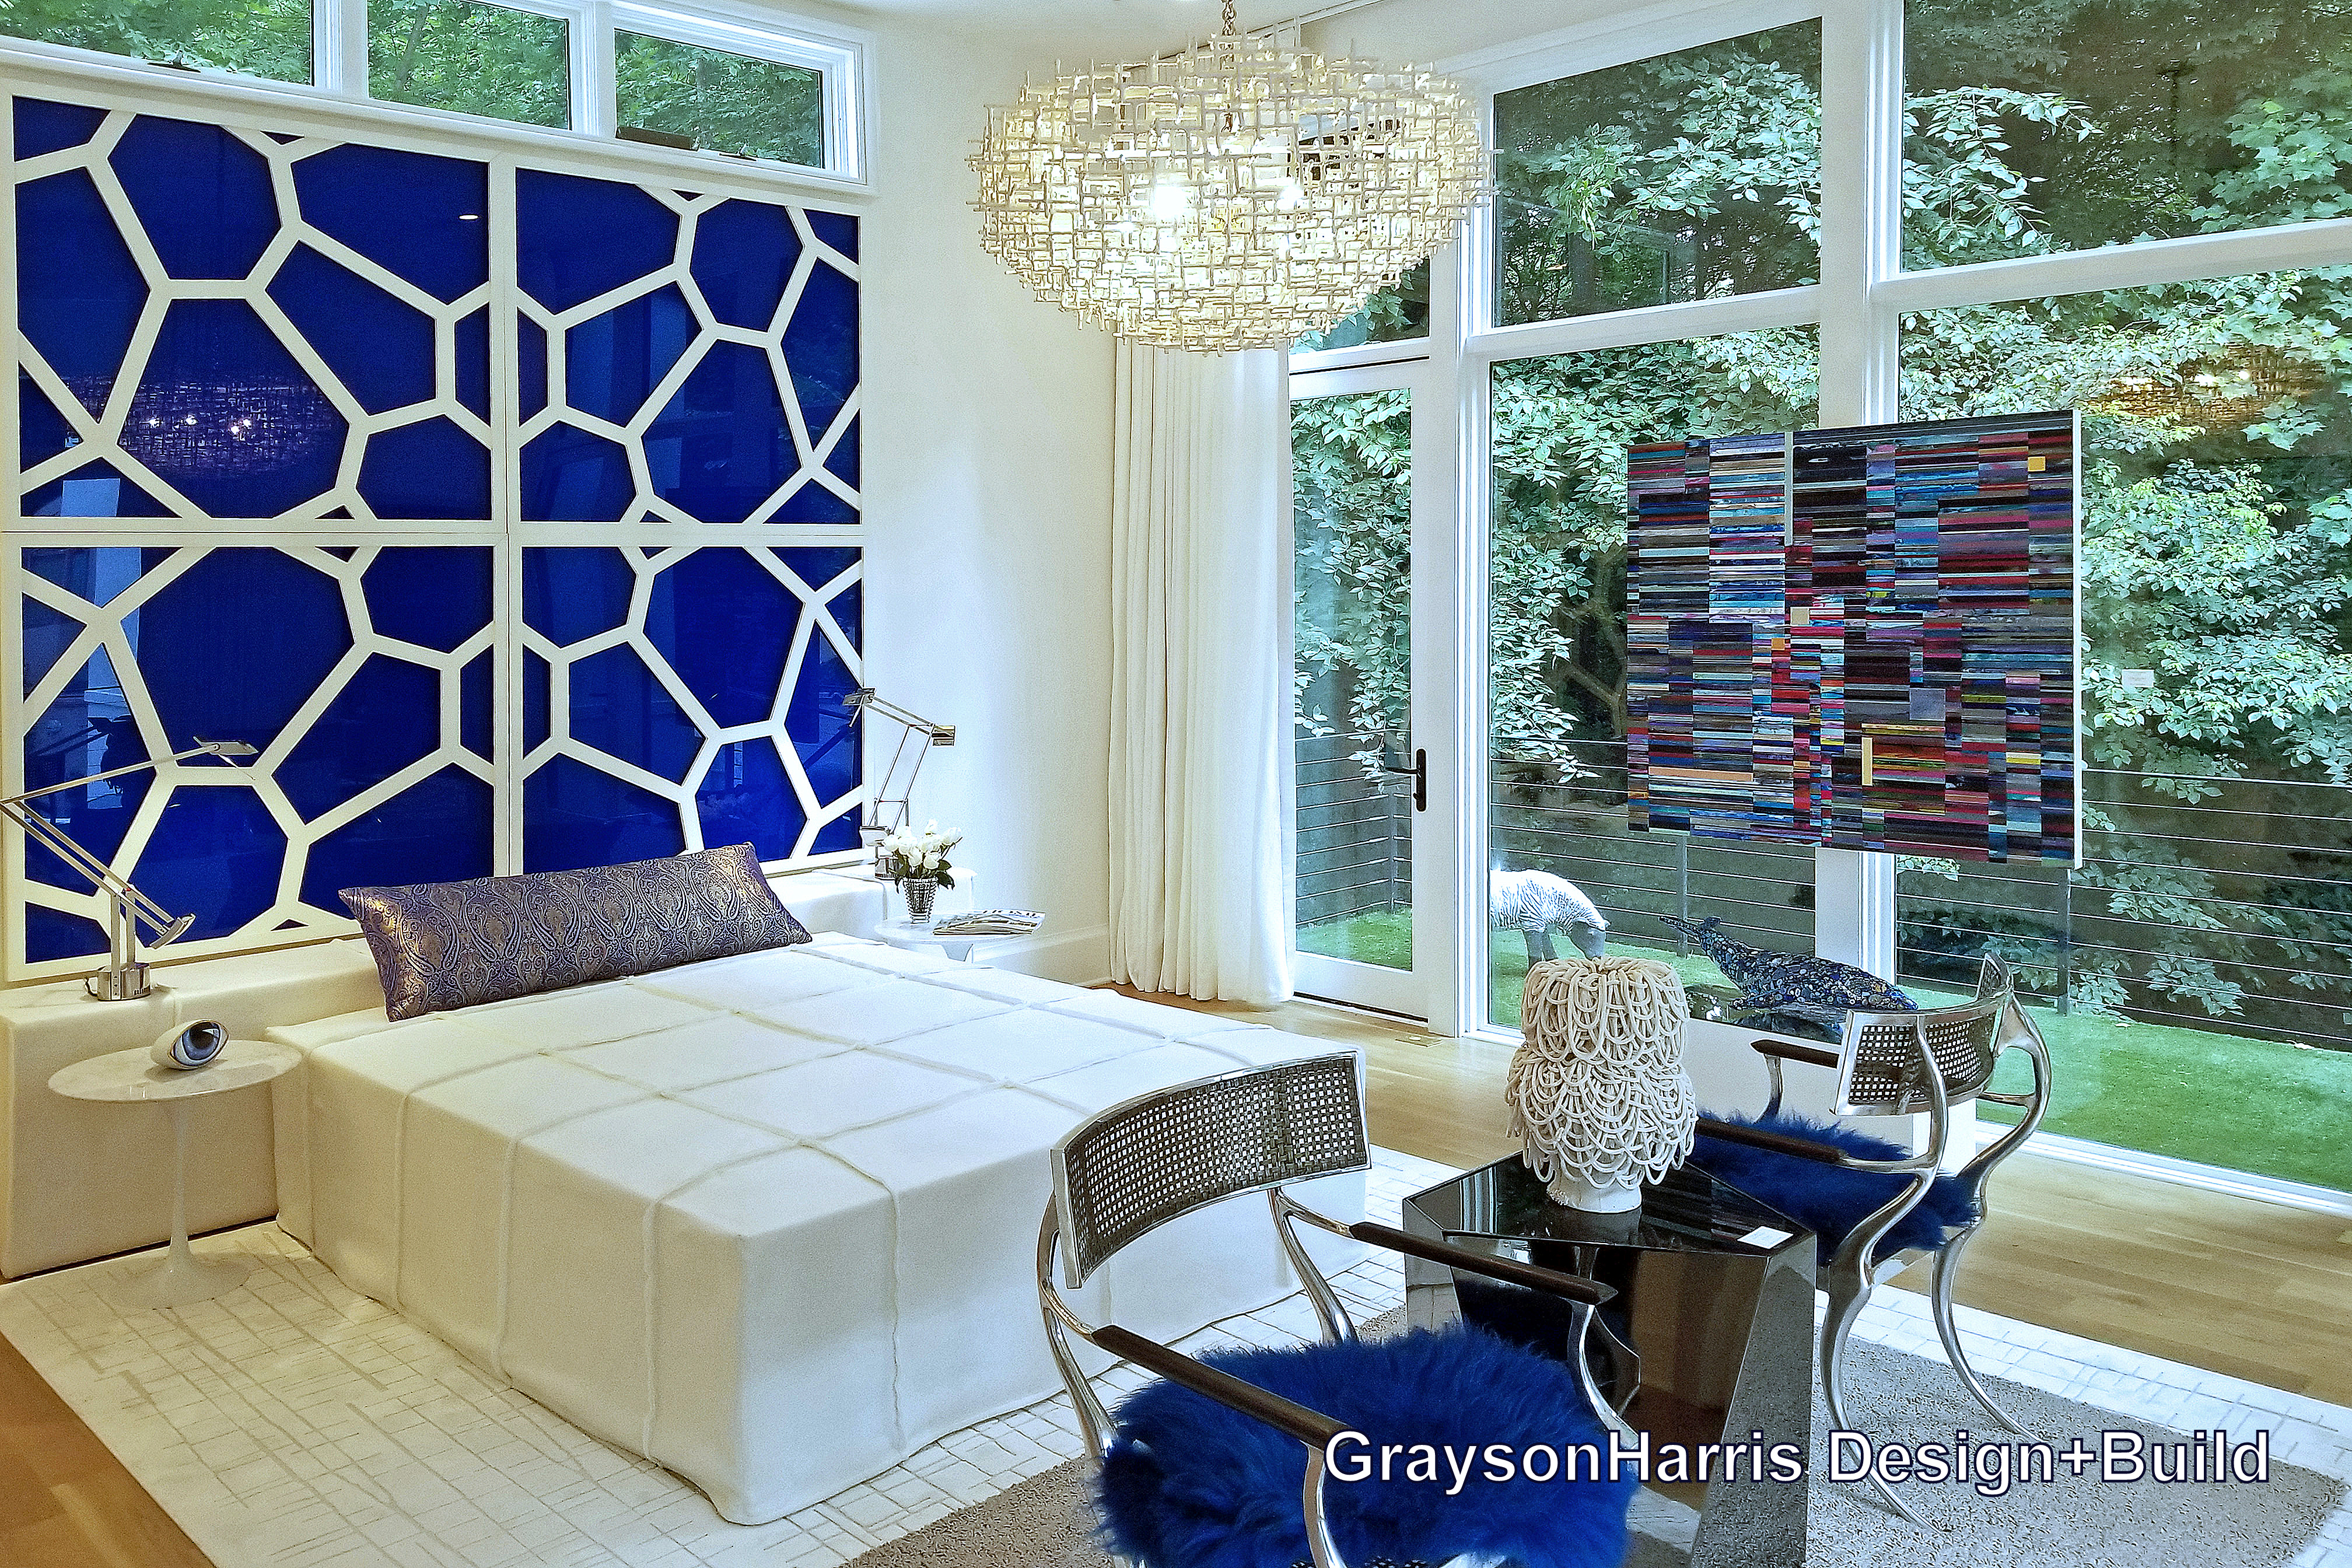 5-Master-suite-by-Grayson-Harris-20190605_192817ps2wm